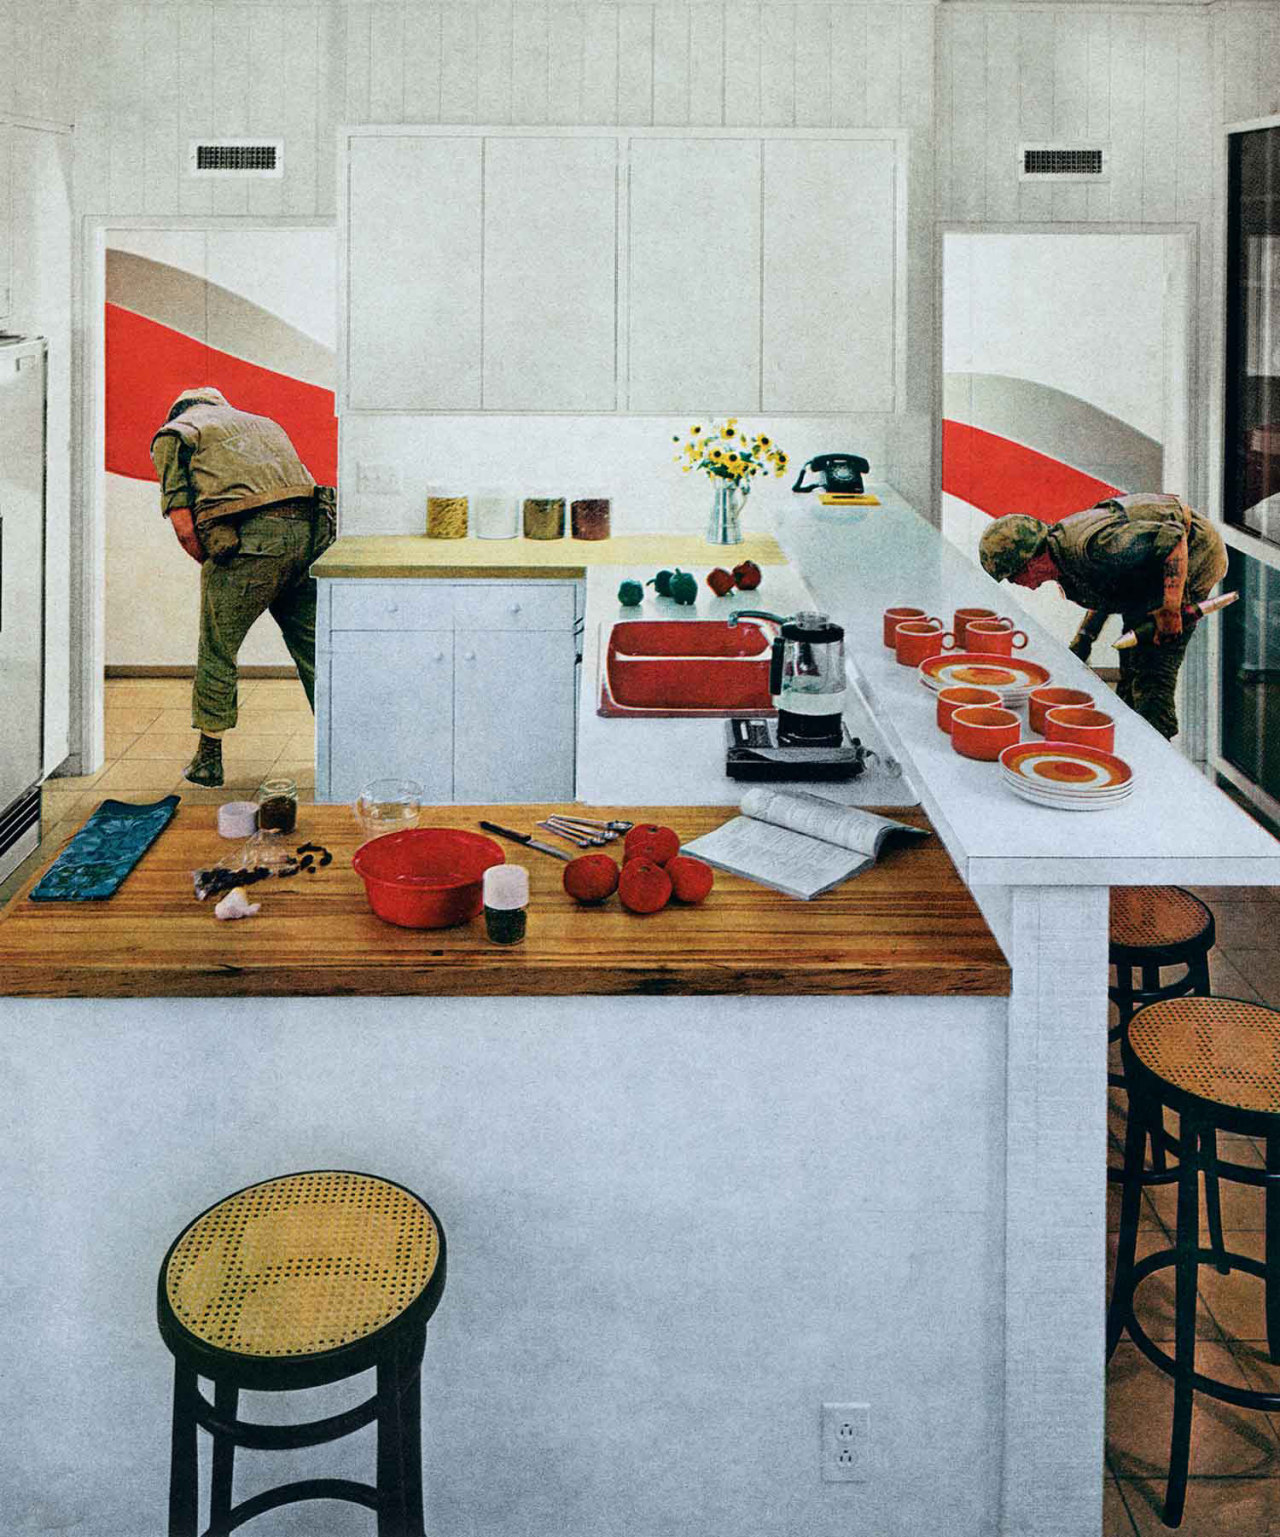 Martha RoslerRed Stripe Kitchen  1967-1972 From the series Bringing the War Home: House Beautiful